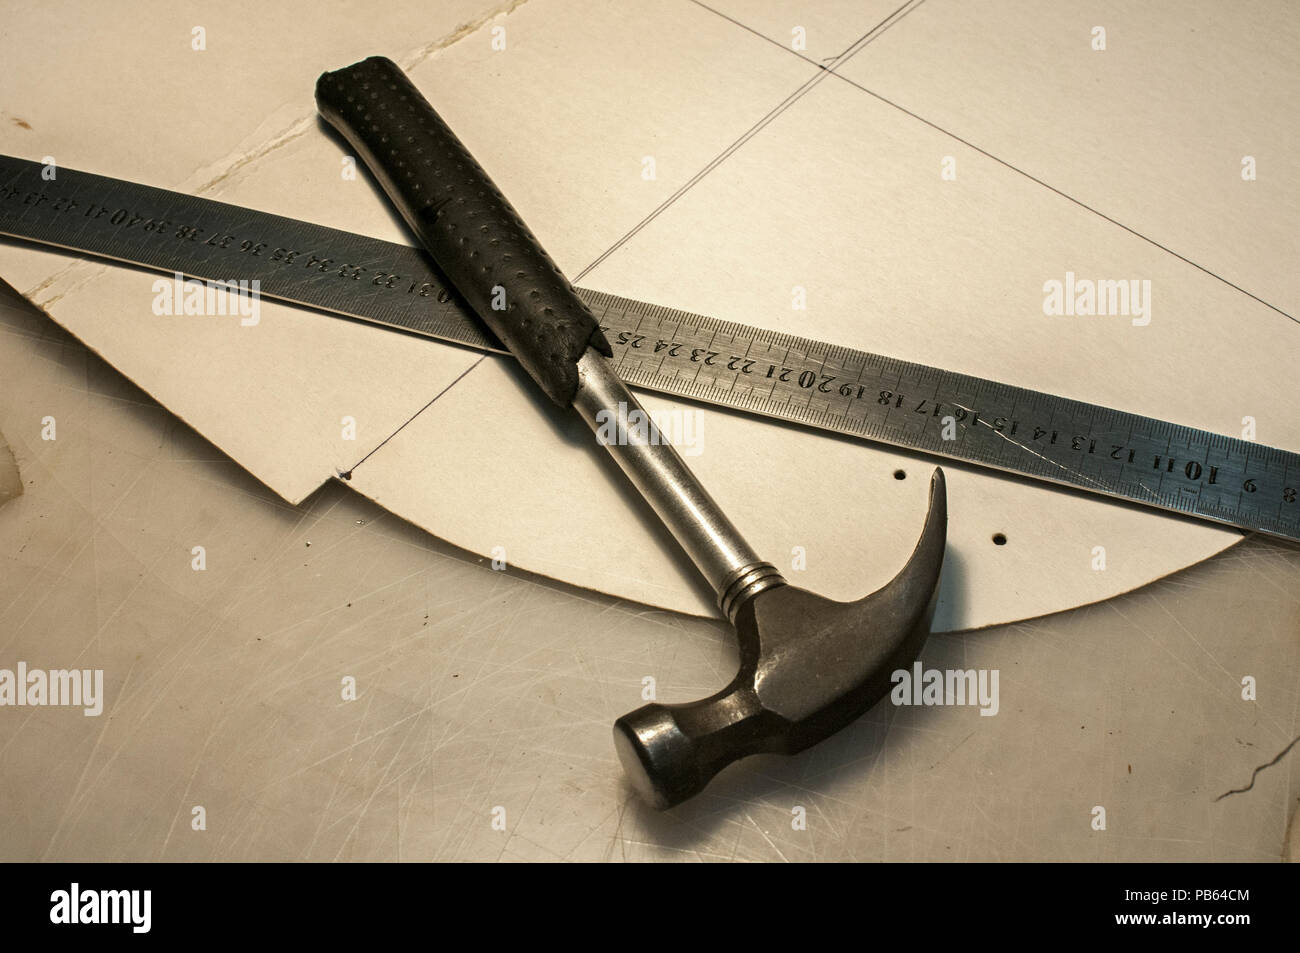 Hammer, metal ruler and cardboard cuts as tools in workshop production of leather goods Stock Photo